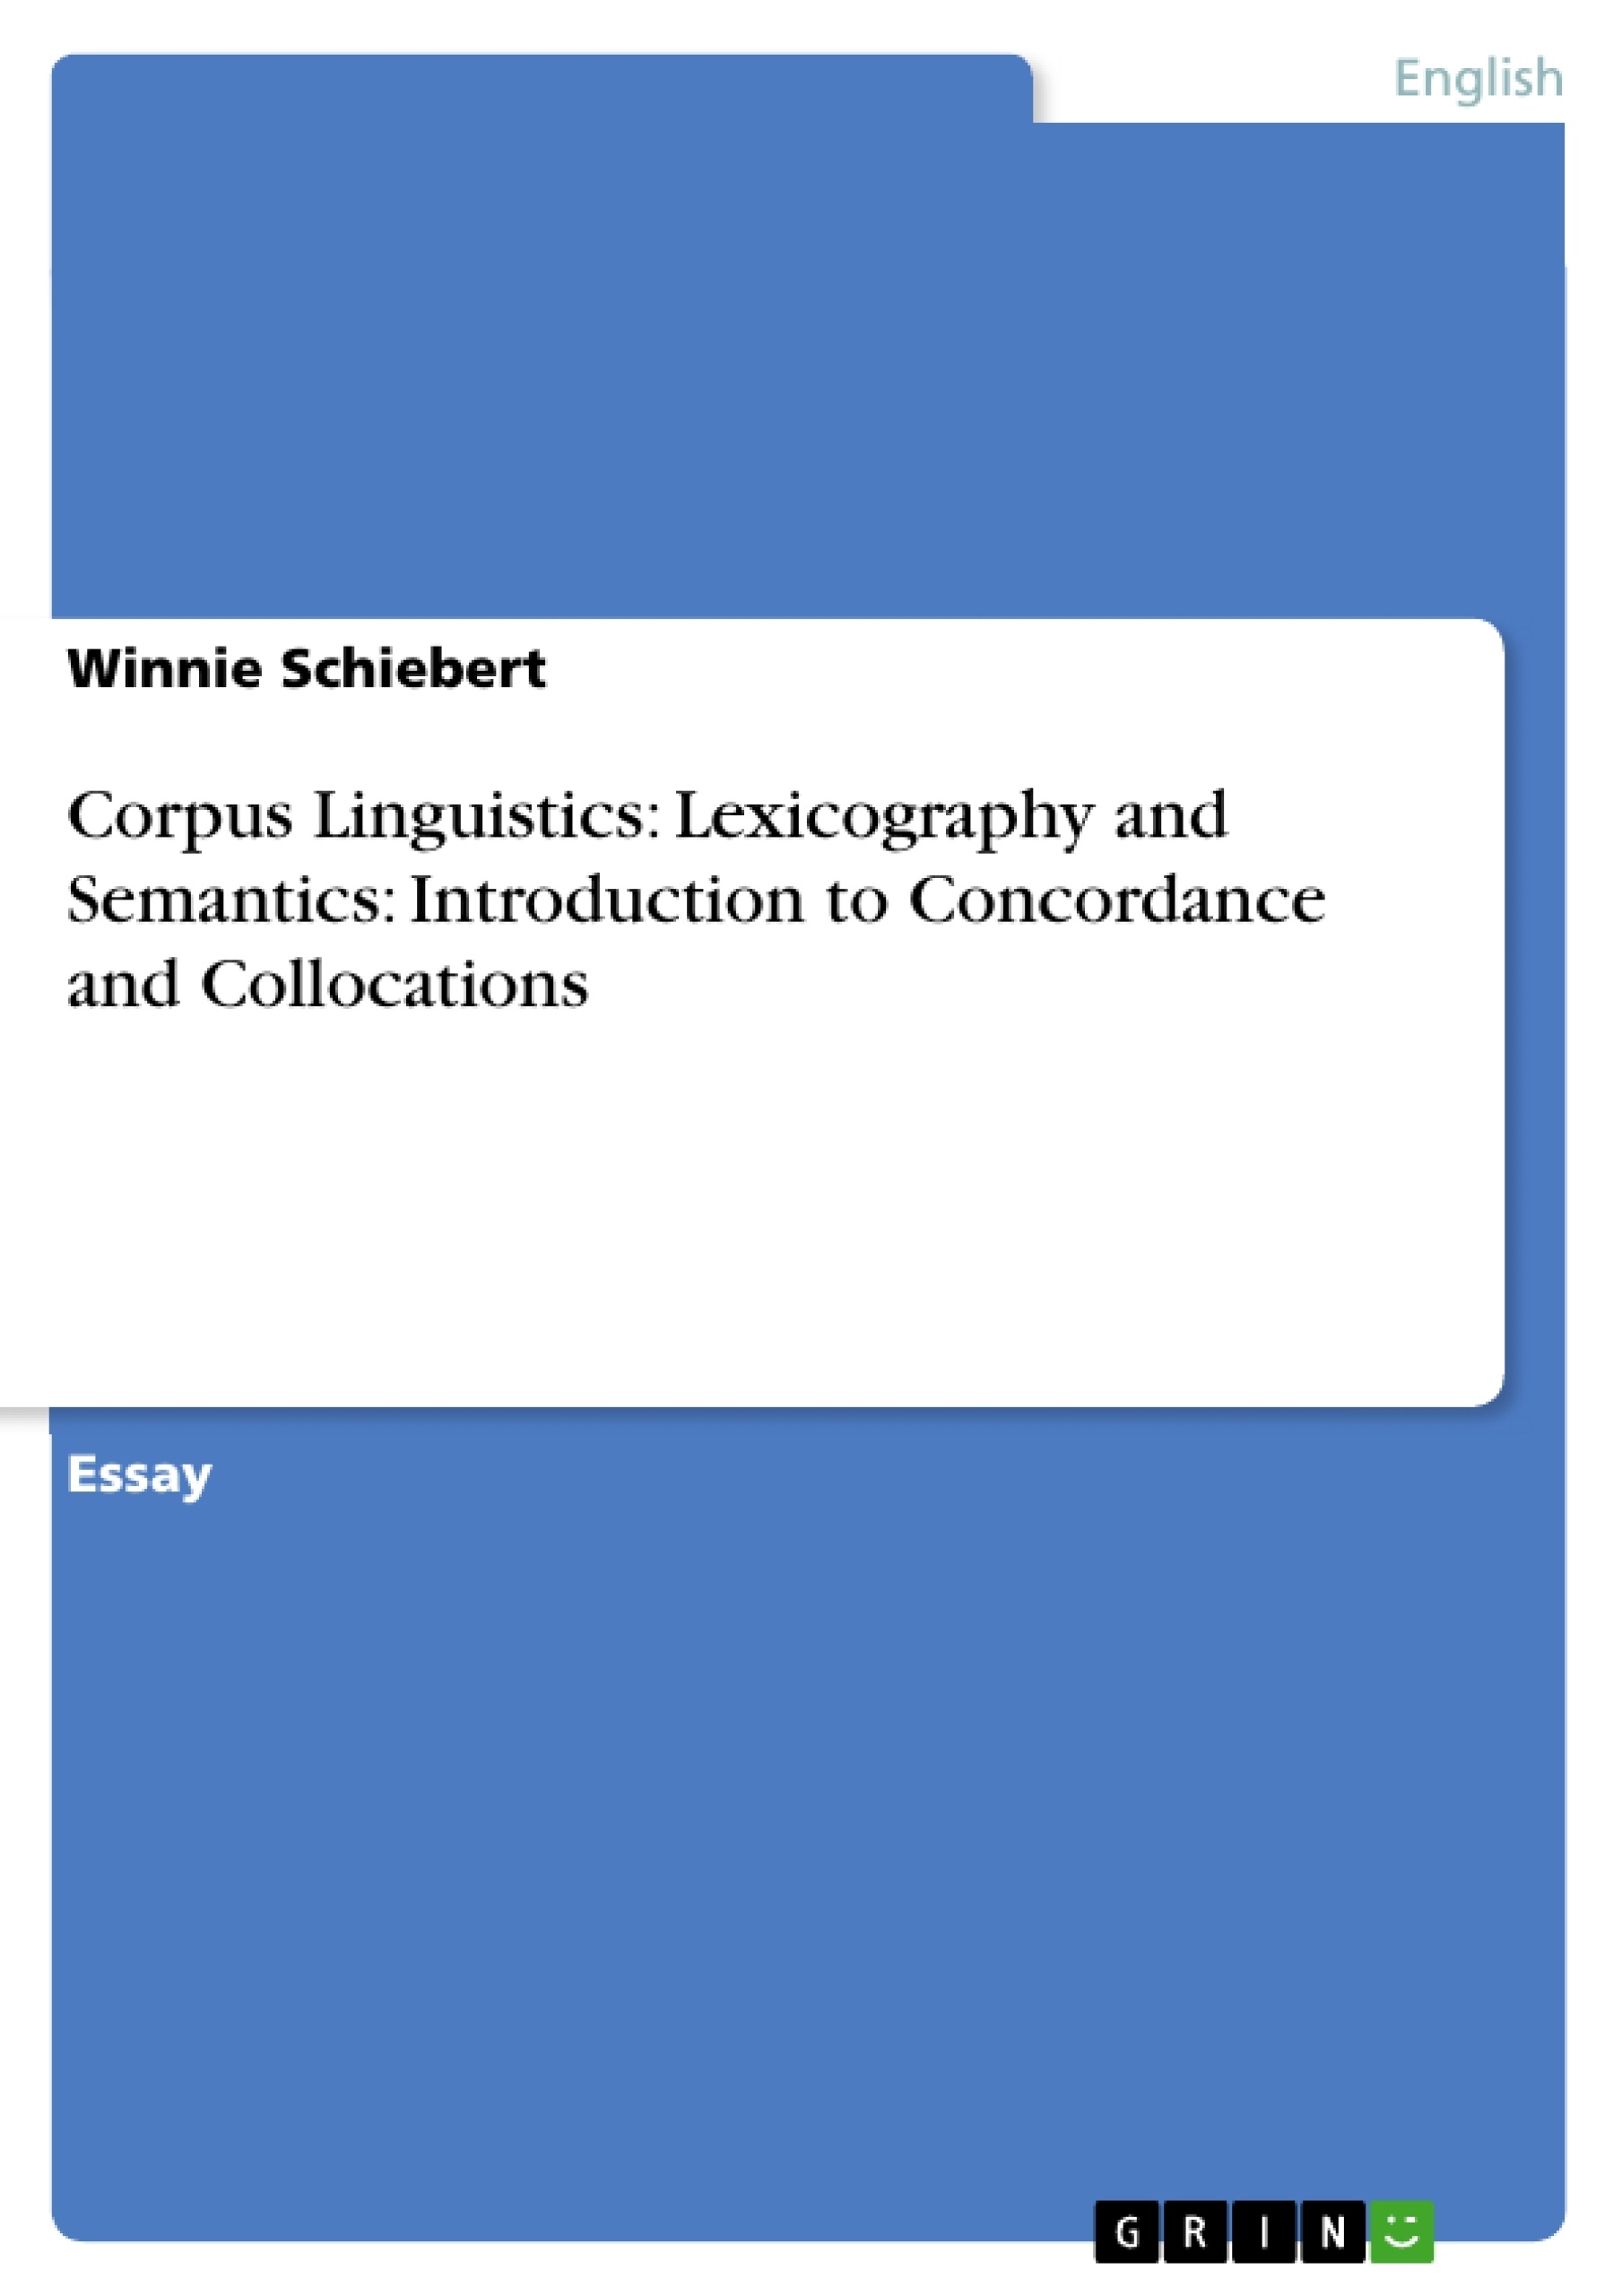 Title: Corpus Linguistics: Lexicography and Semantics: Introduction to Concordance and Collocations